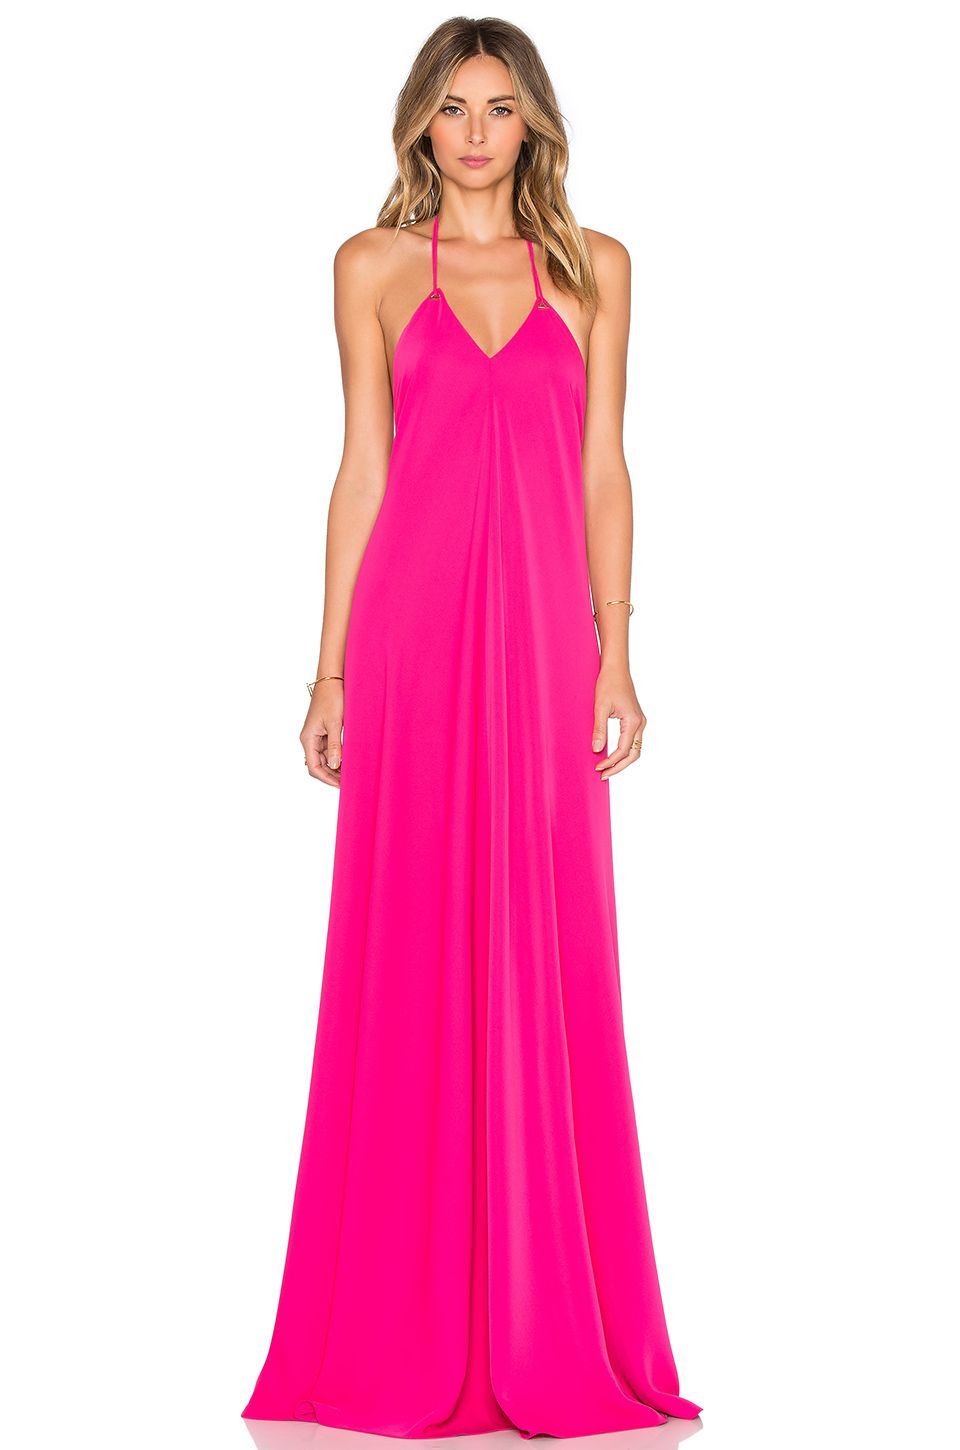 Revolve clothing - HALTER GOWN by JILL JILL STUART